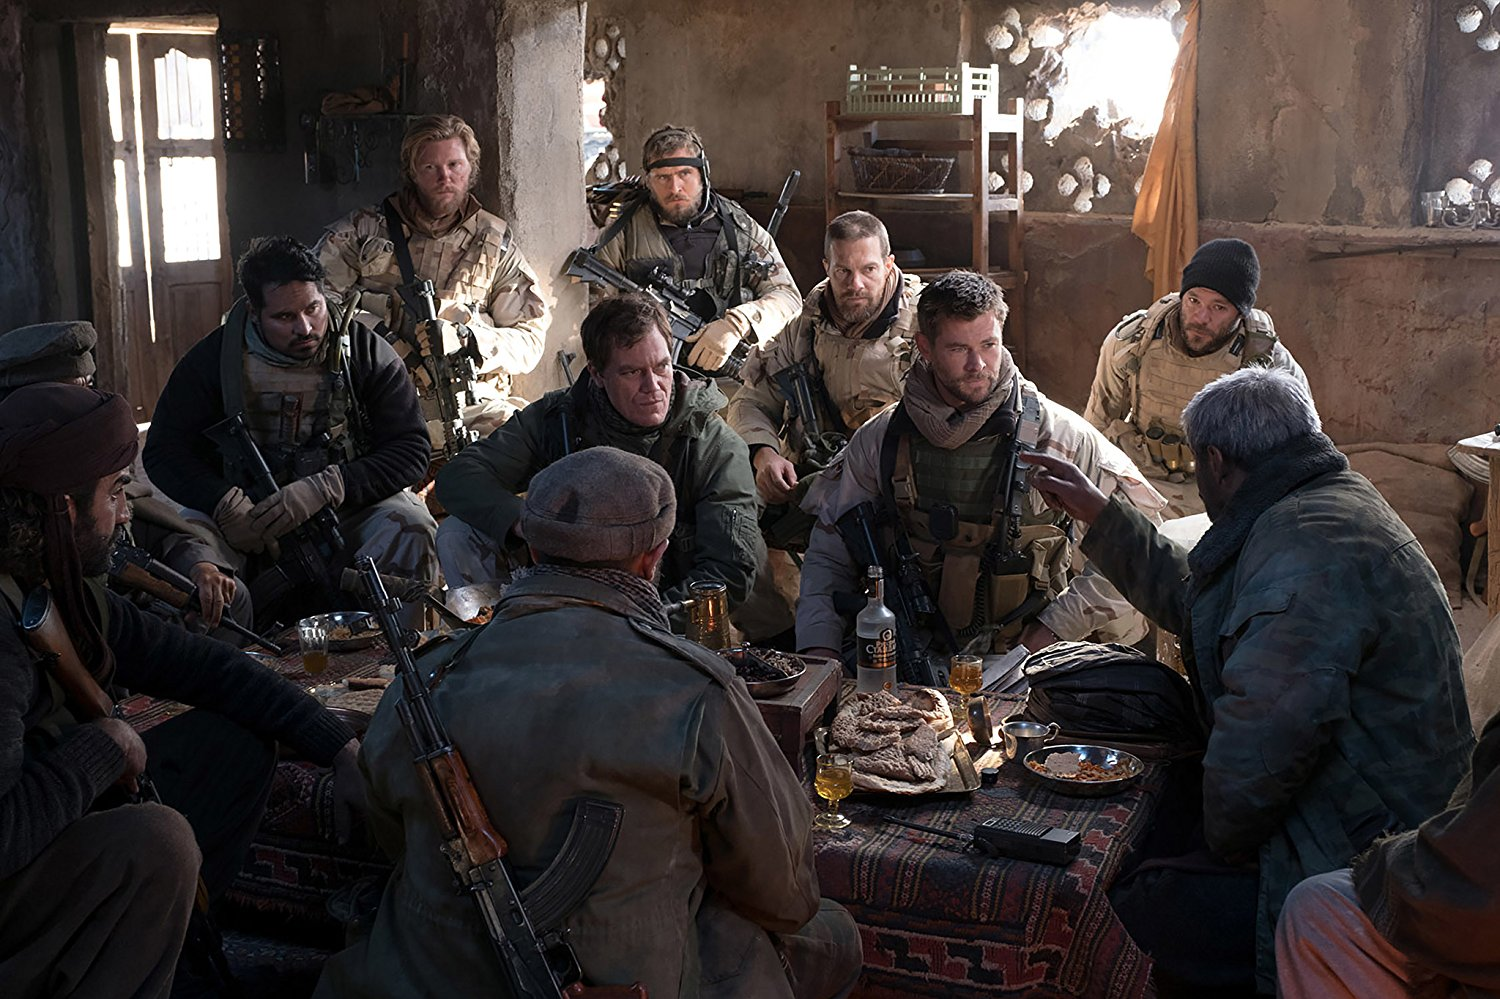 Trailer For 12 Strong Starring Chris Hemsworth, Michael ...